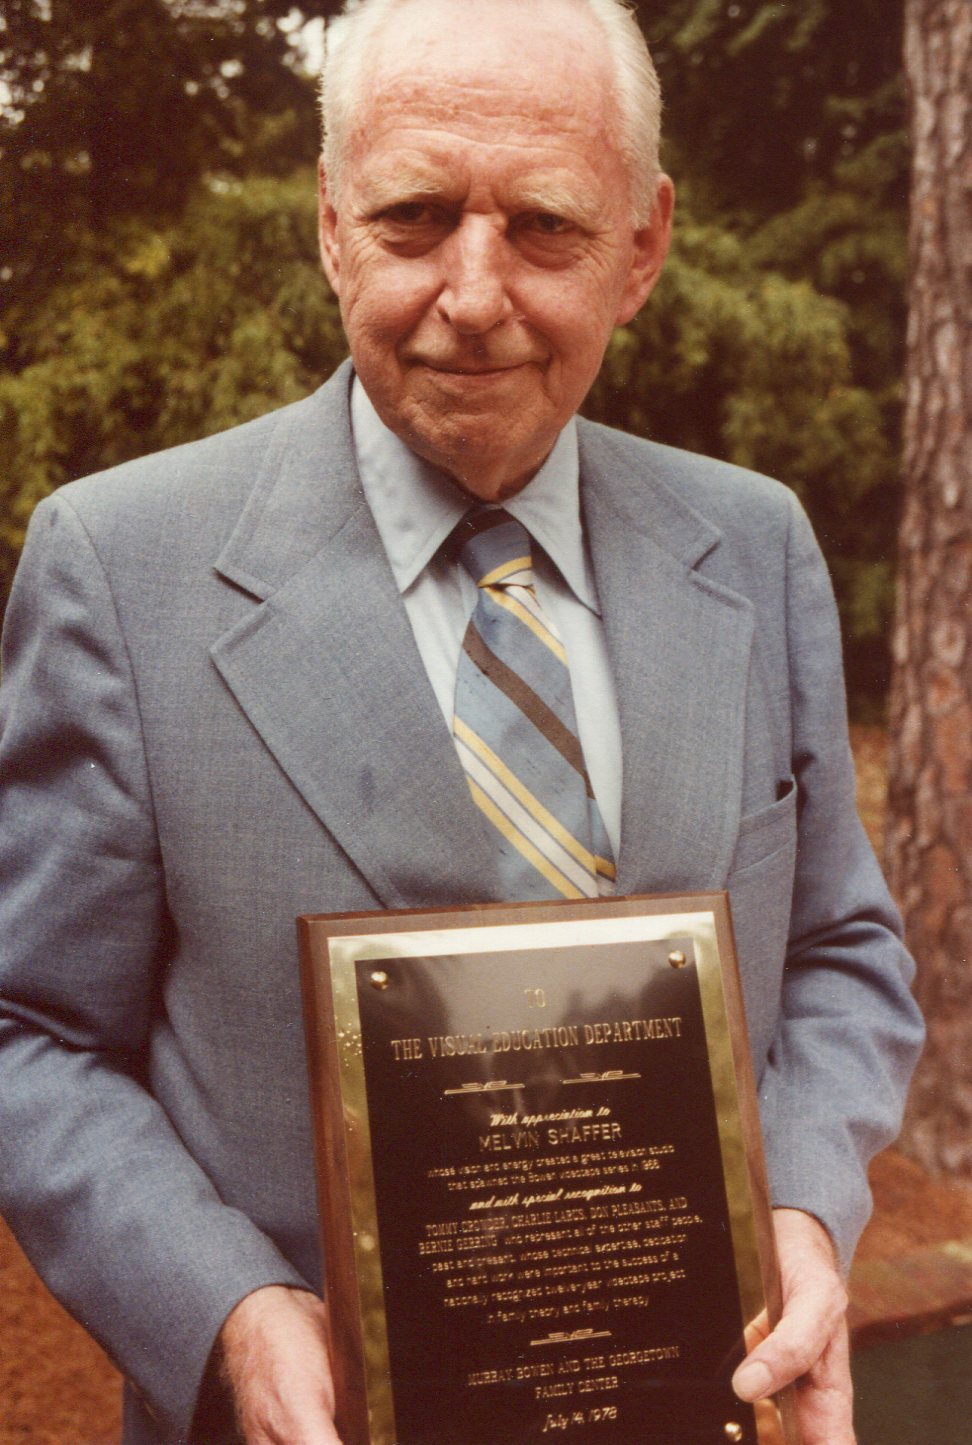 dr murray bowen s family systems theory Bowen family systems theory was developed by murray bowen, md in the late 1940's and early 1950's, when he was a psychiatrist at the menninger clinic, in topeka kansas.